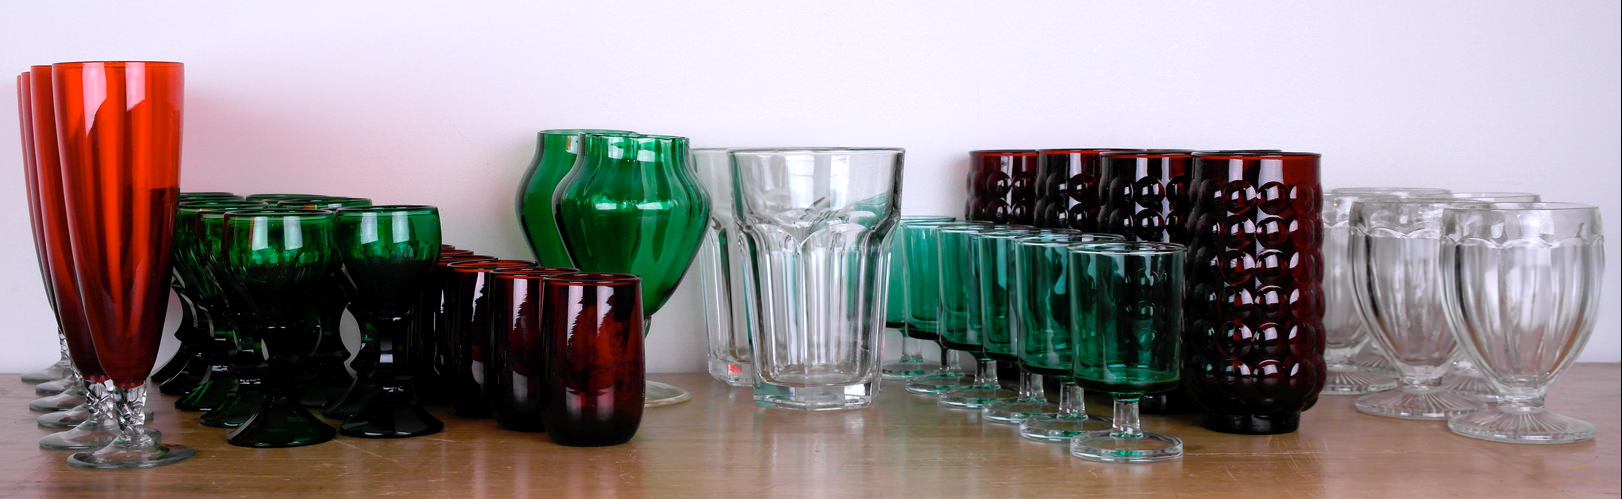 Vintage wine and drinking glasses